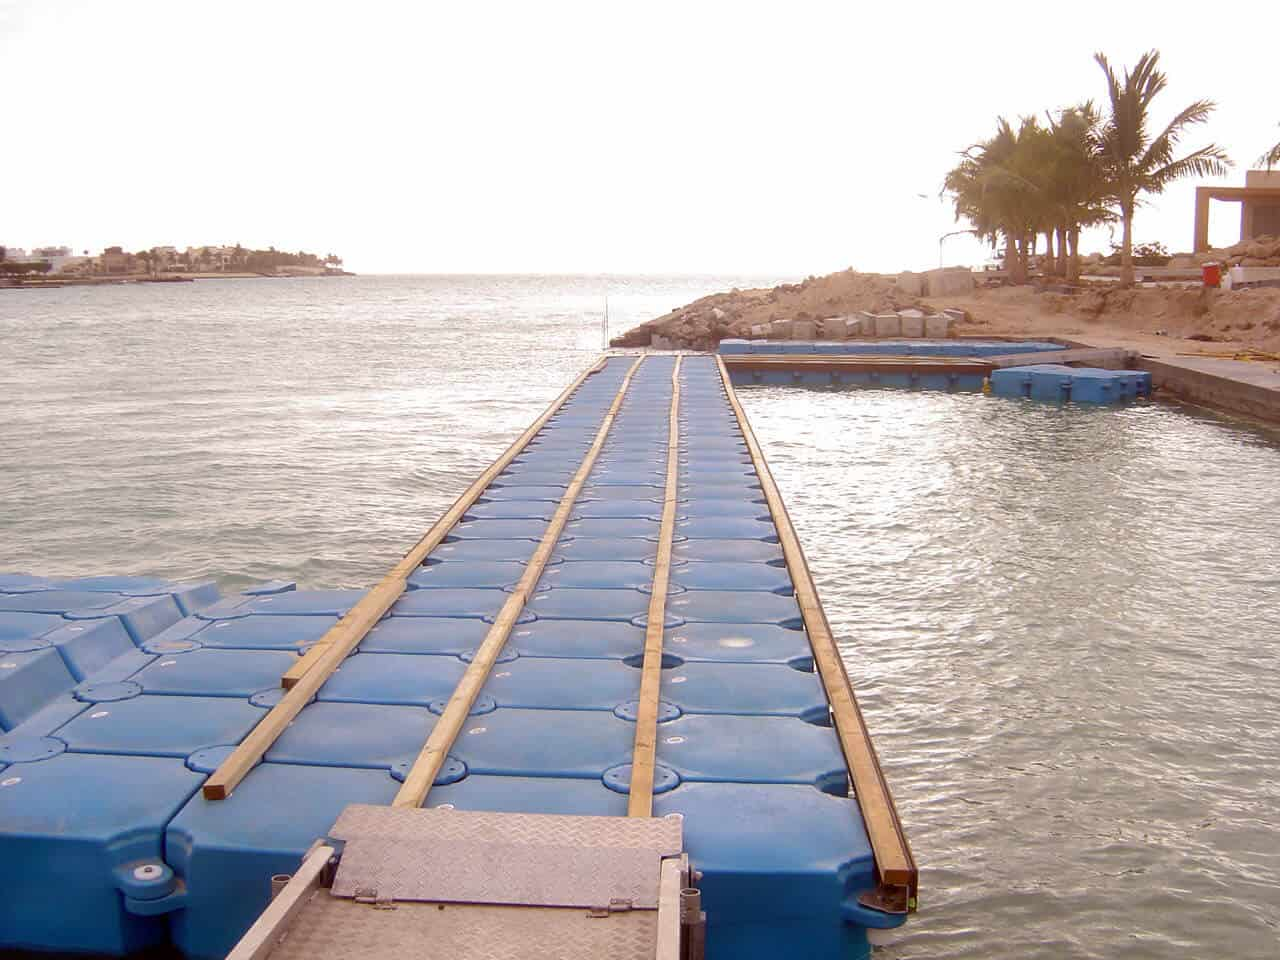 Airfloat Modular Pontoon System in use - Saudi Arabia - 8